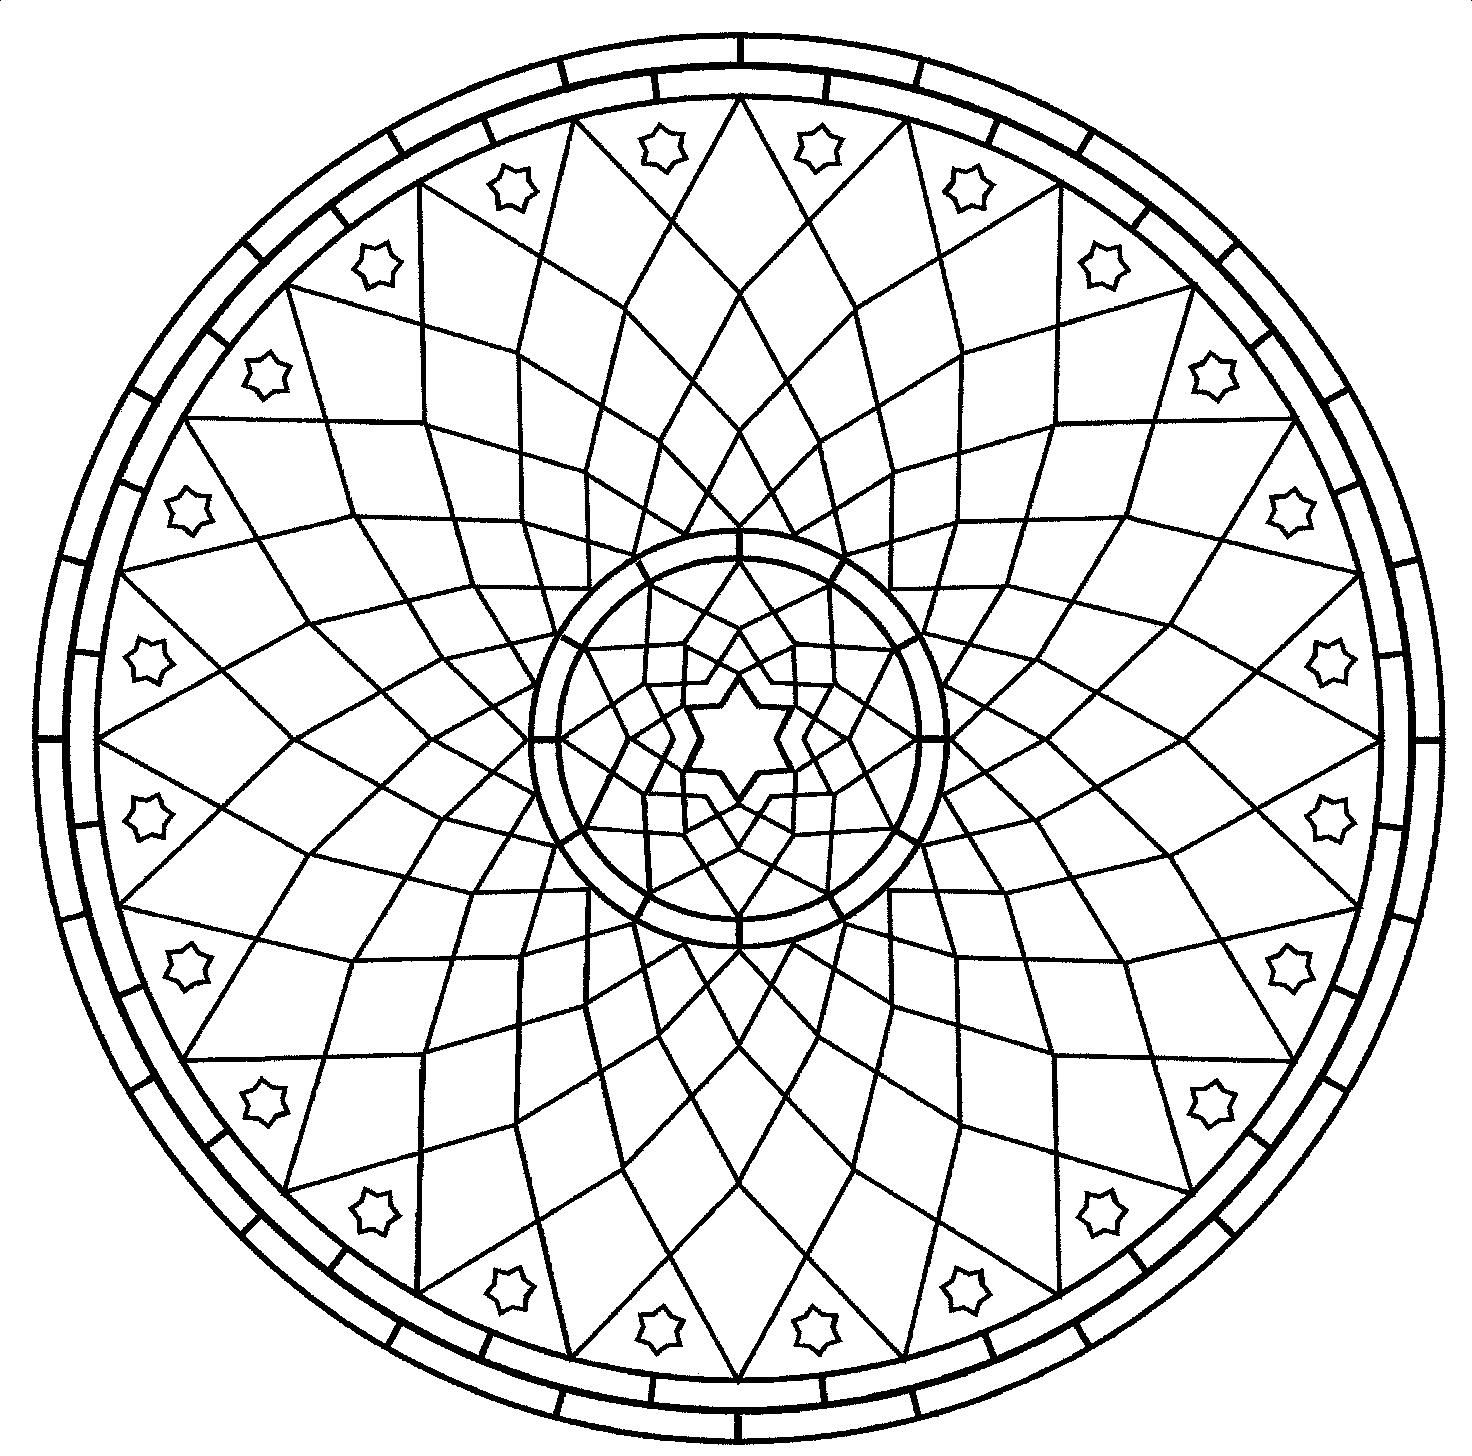 Jewish mandala coloring pages - Welcome In Colouring Pictures Site In This Site You Will Find A Lot Of Mandala Colouring Pictures In Many Kind Of Pictures All Of It In This Site Is Free